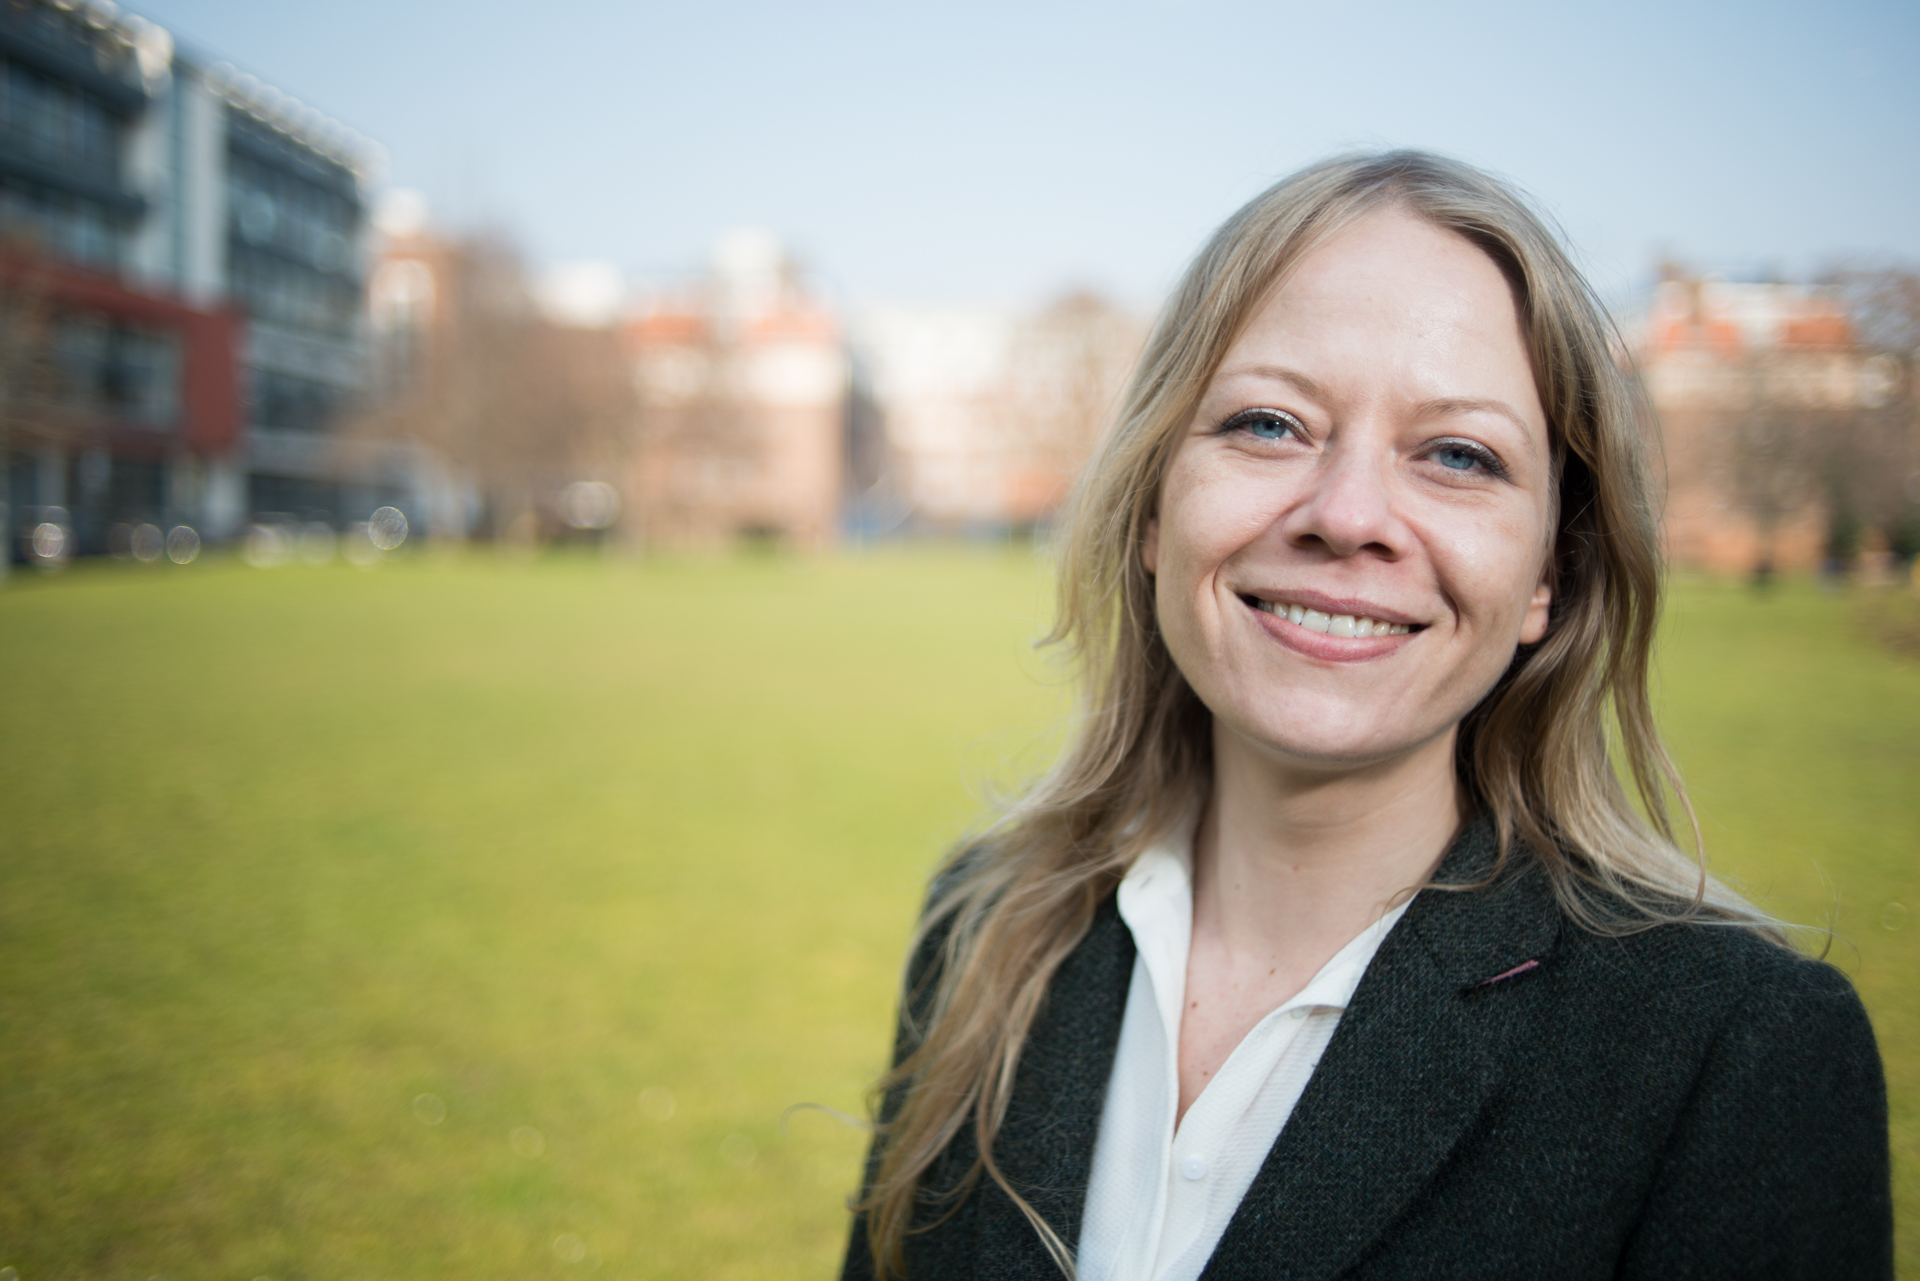 Portrait of Sian Berry - Green Party London Mayoral Candidate and London Assembly member